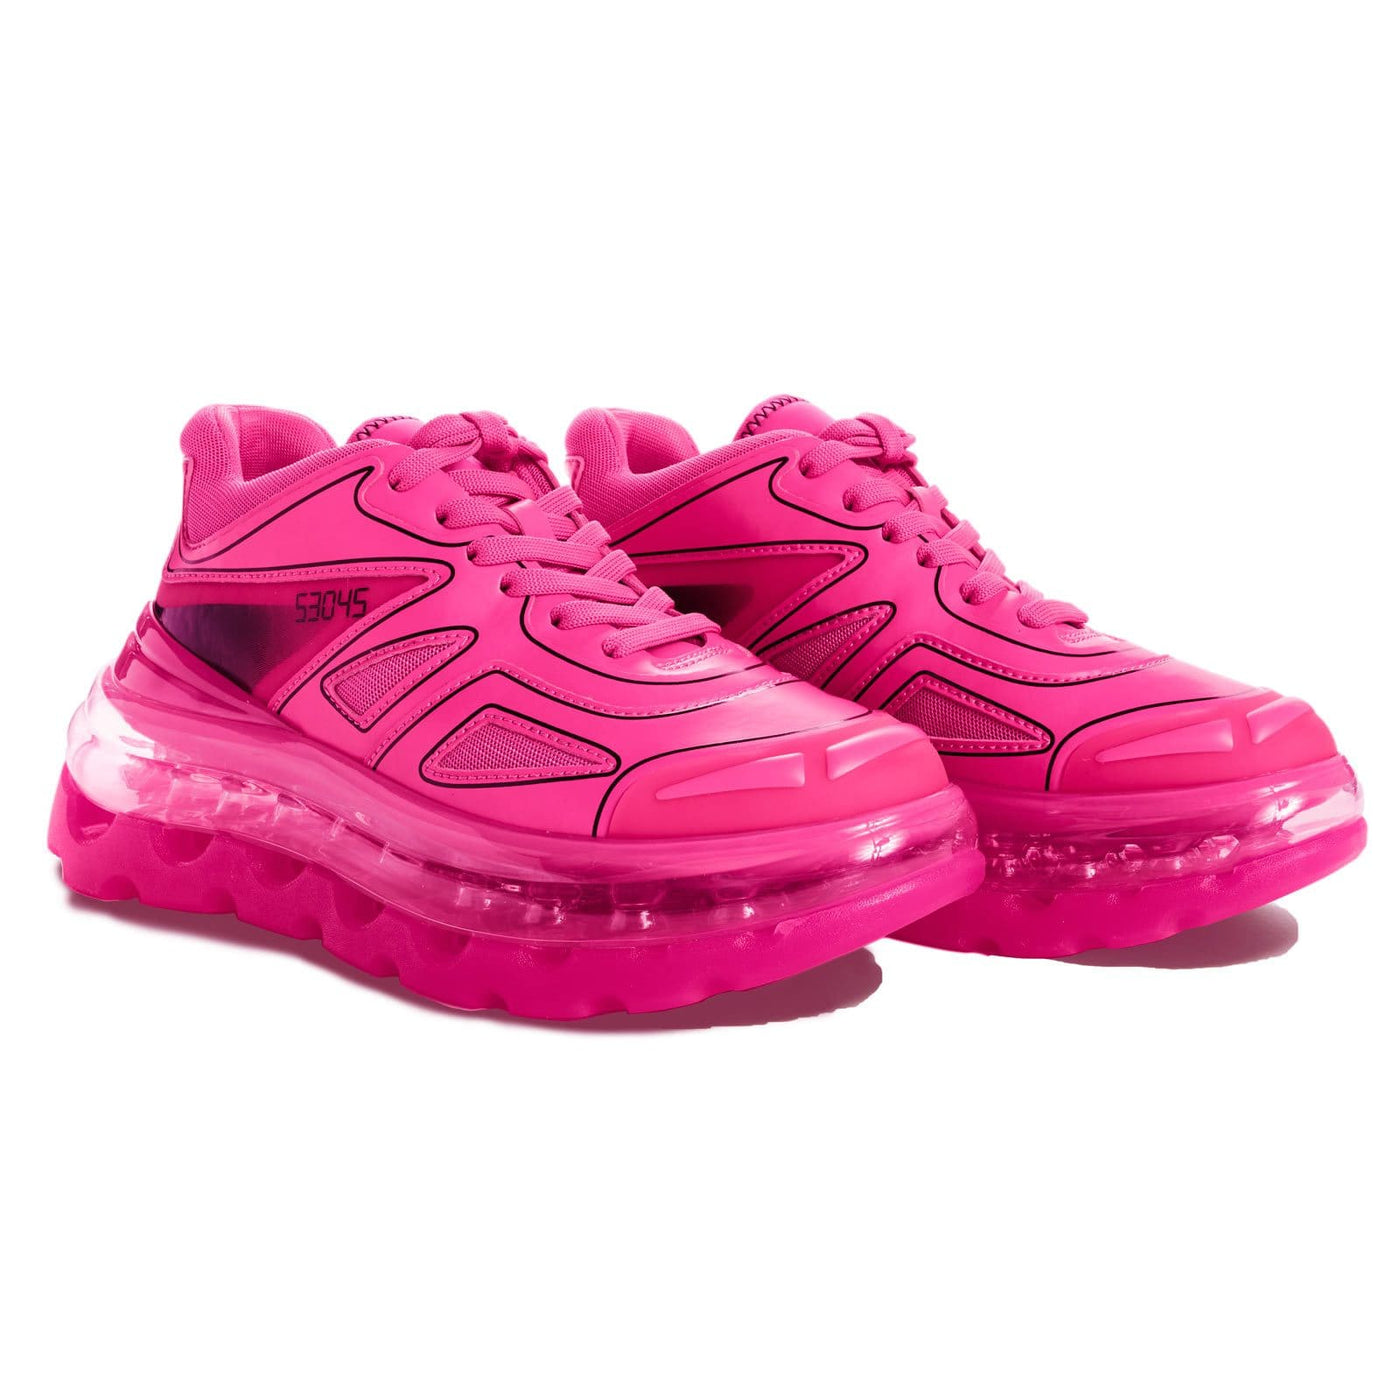 SHOES 53045 - Bump'Air Neon Pink